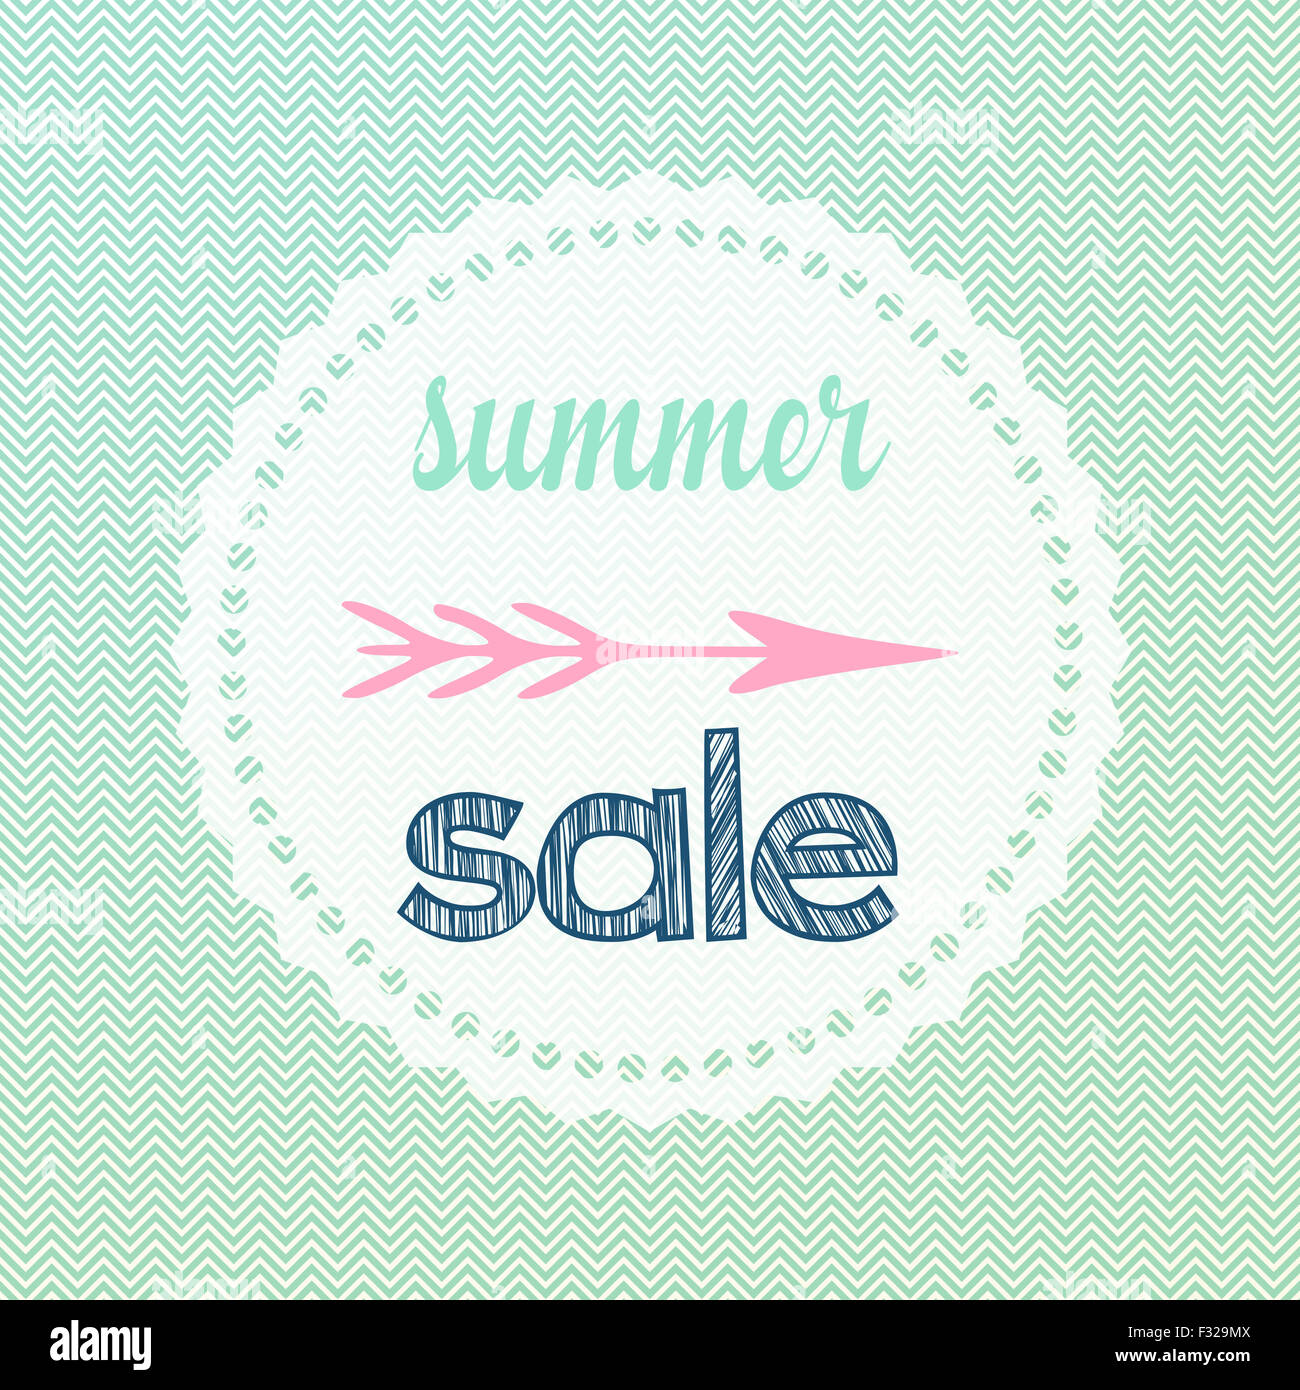 illustration of chevron waves patterned summer sale sign stock photo